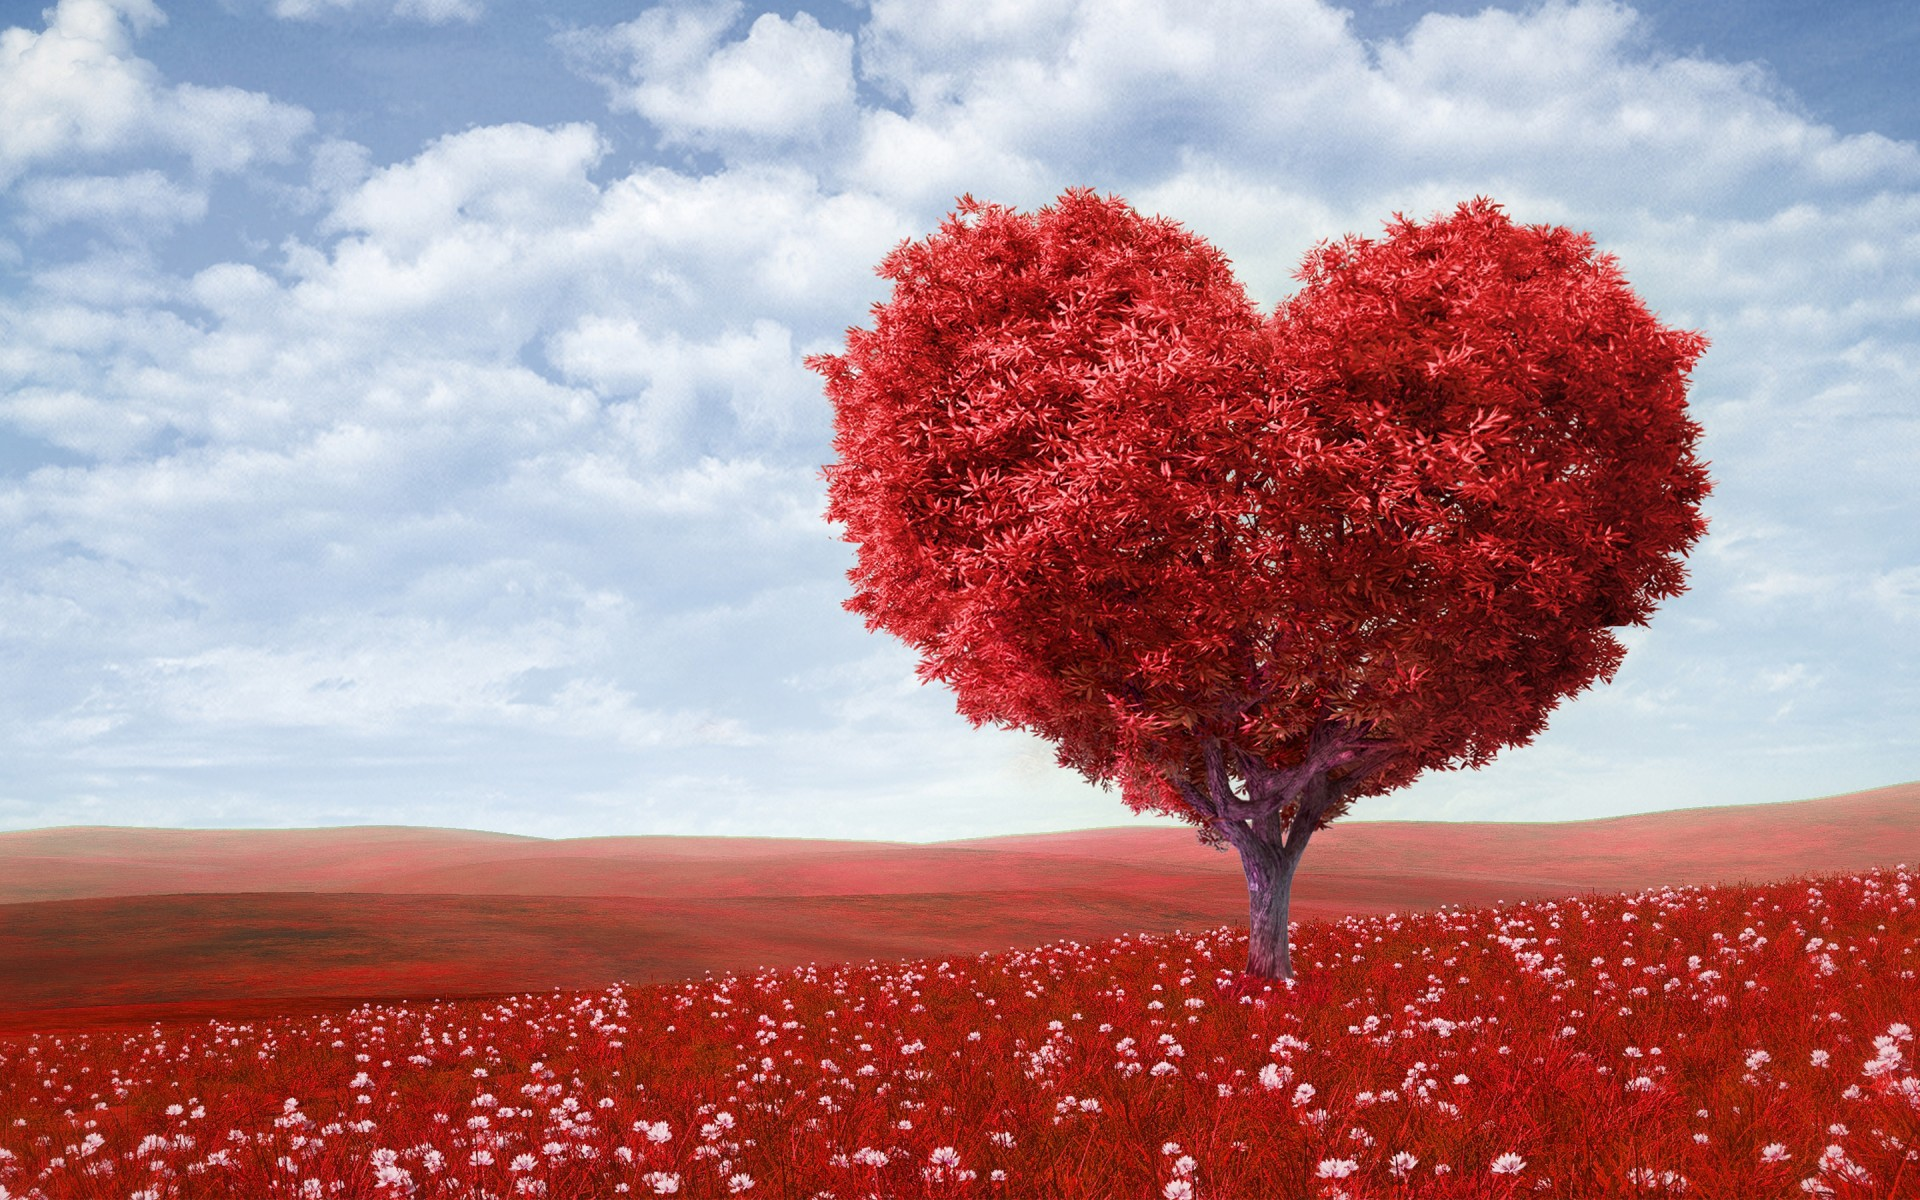 Iphone 5 Fall Wallpaper Red Love Heart Tree Wallpapers Hd Wallpapers Id 16776